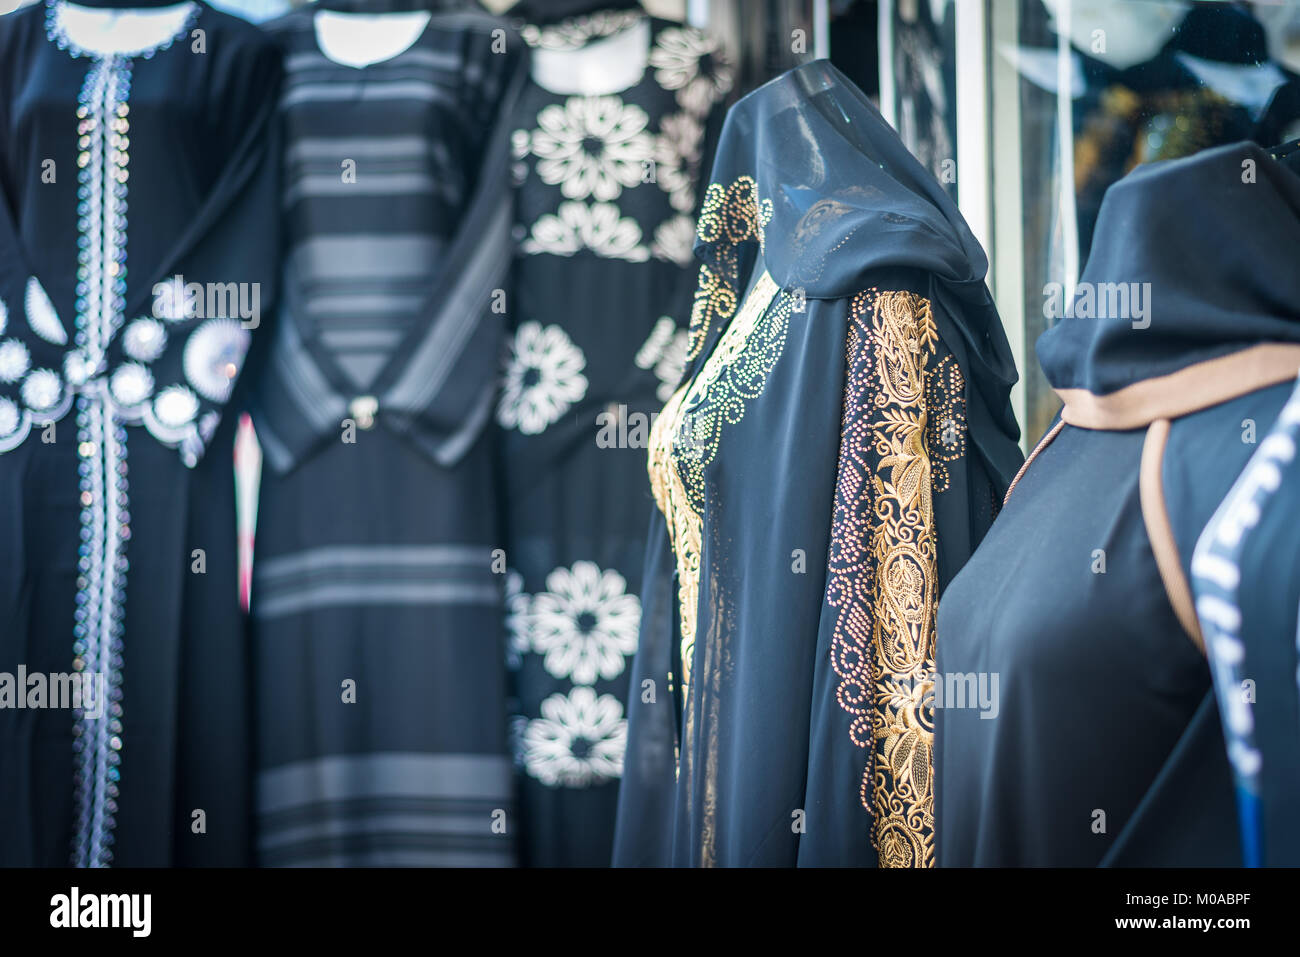 Local Dress Shops